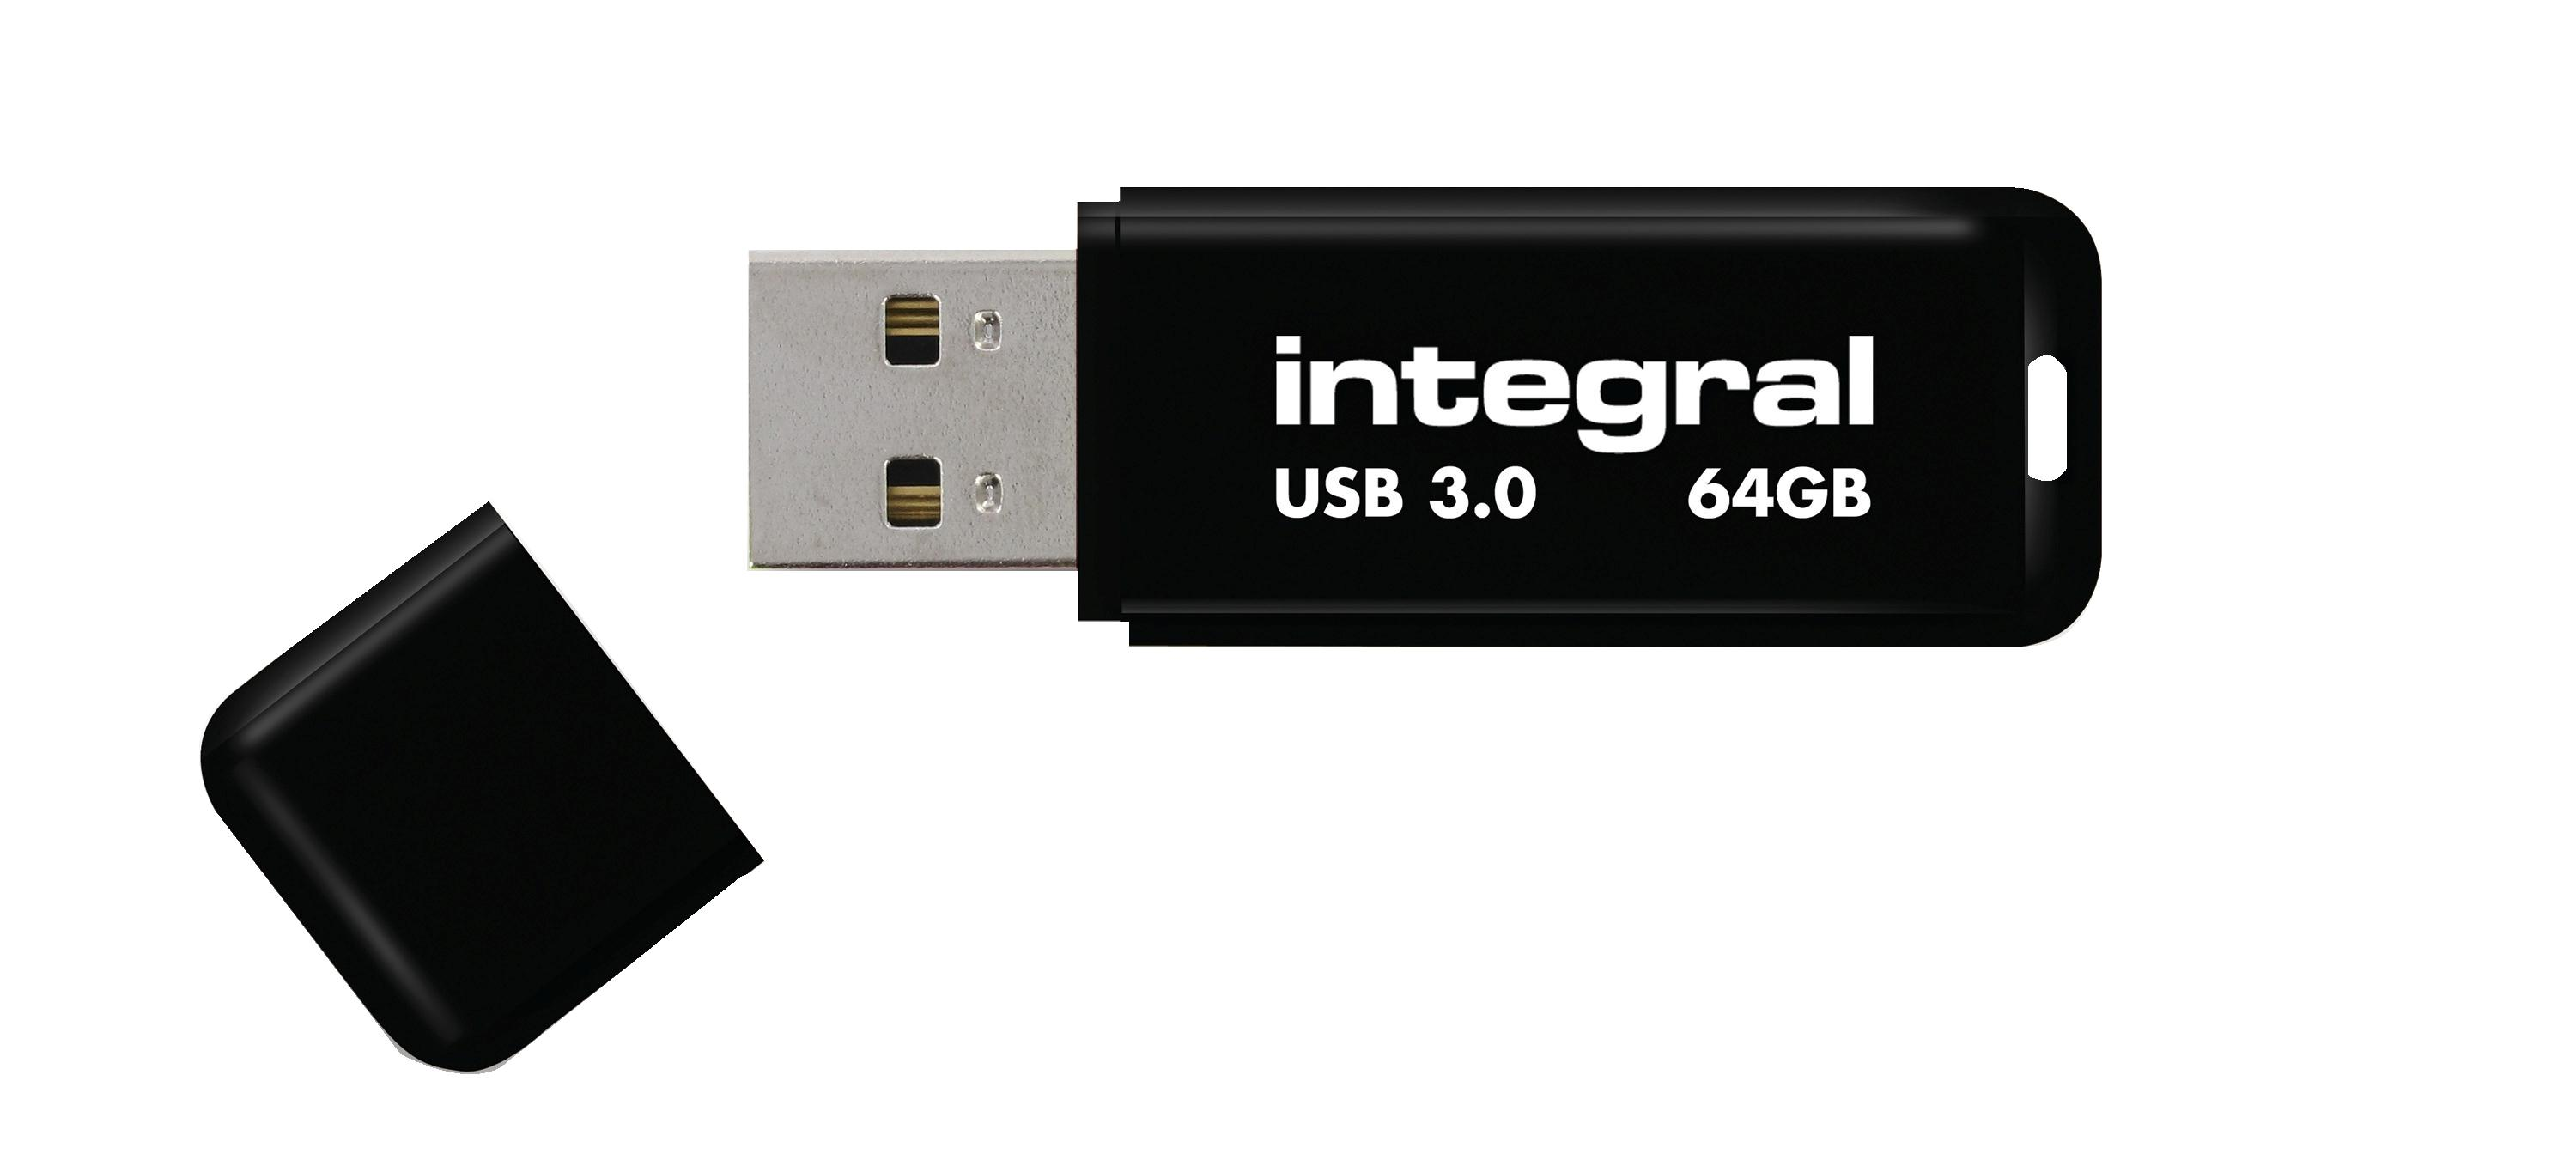 Integral Noir Flash Drive USB 3.0 64GB Ref INFD64GBNOIR3.0